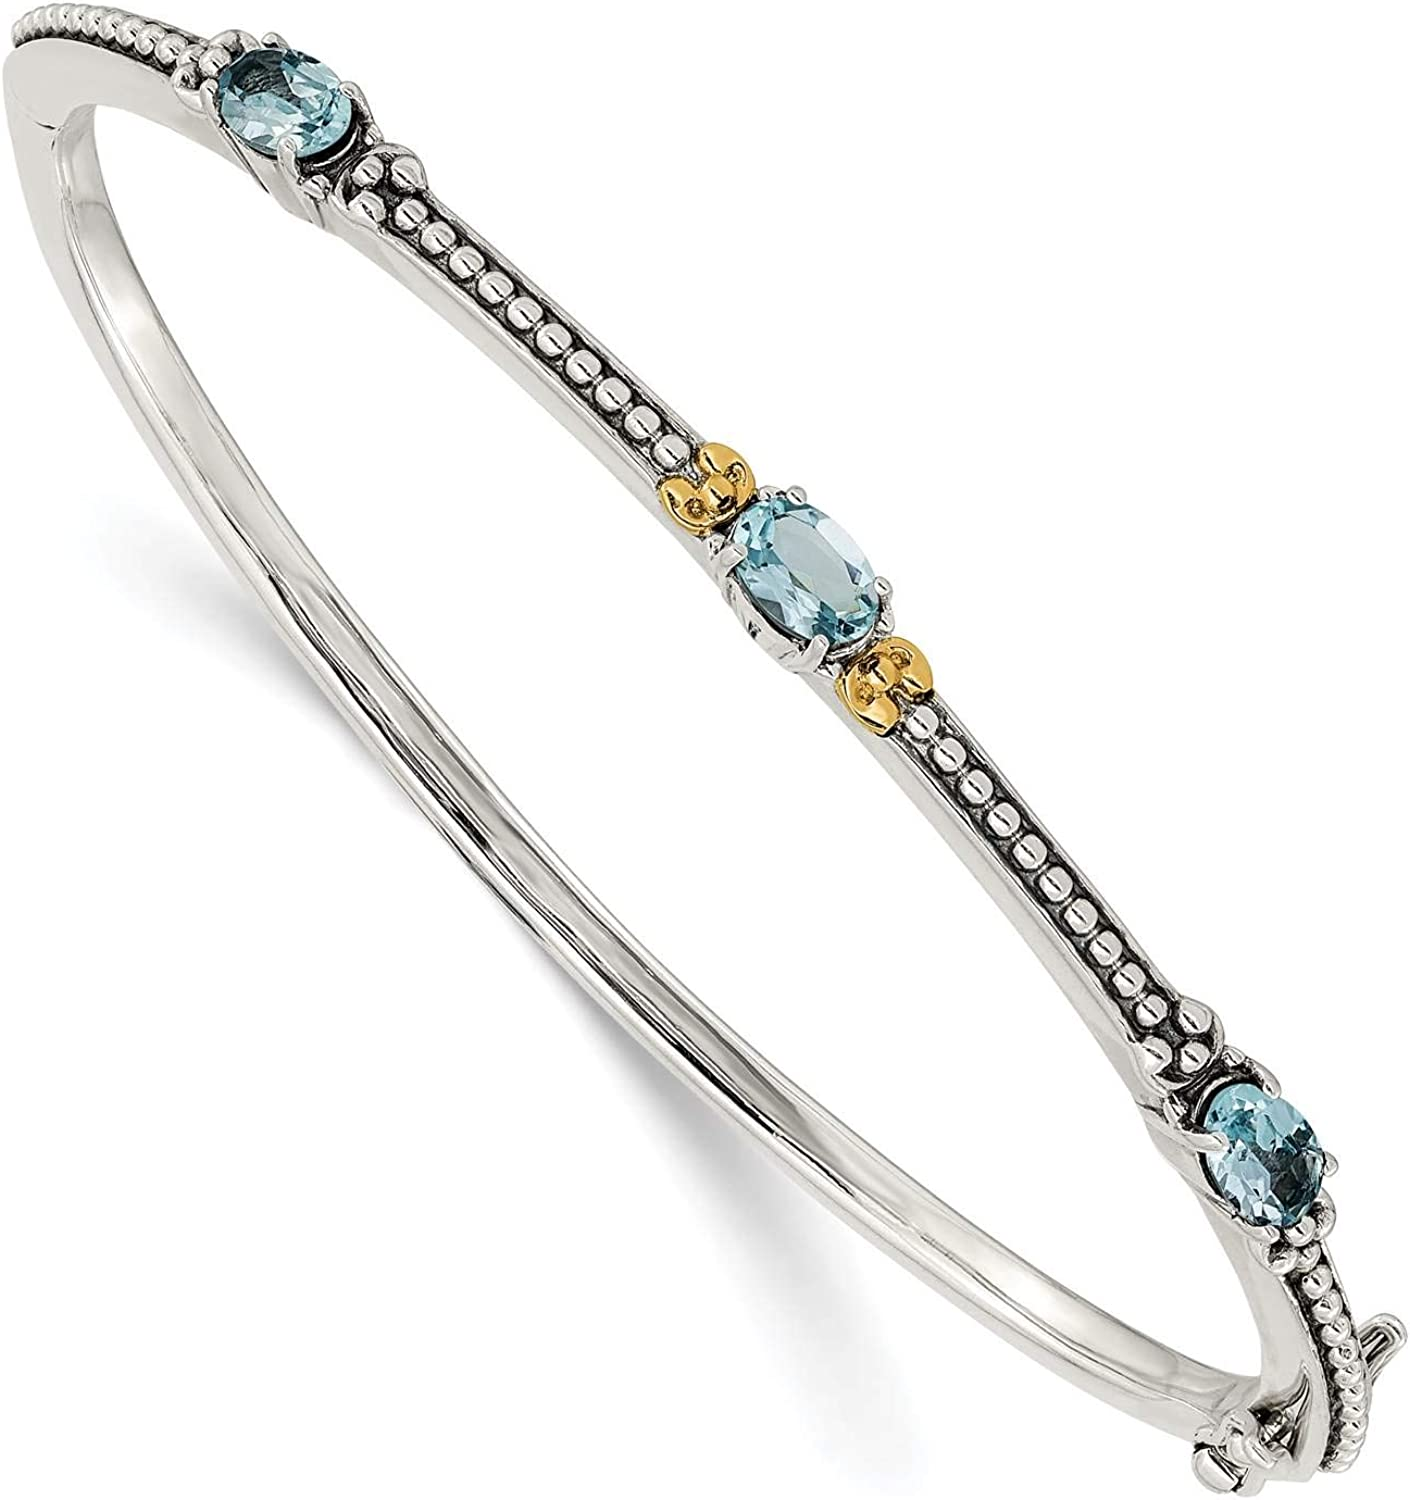 925 Sterling Silver w//14k Gold Accent Polished /& Antiqud Sky Blue Topaz Bangle Bracelet by Shey Couture